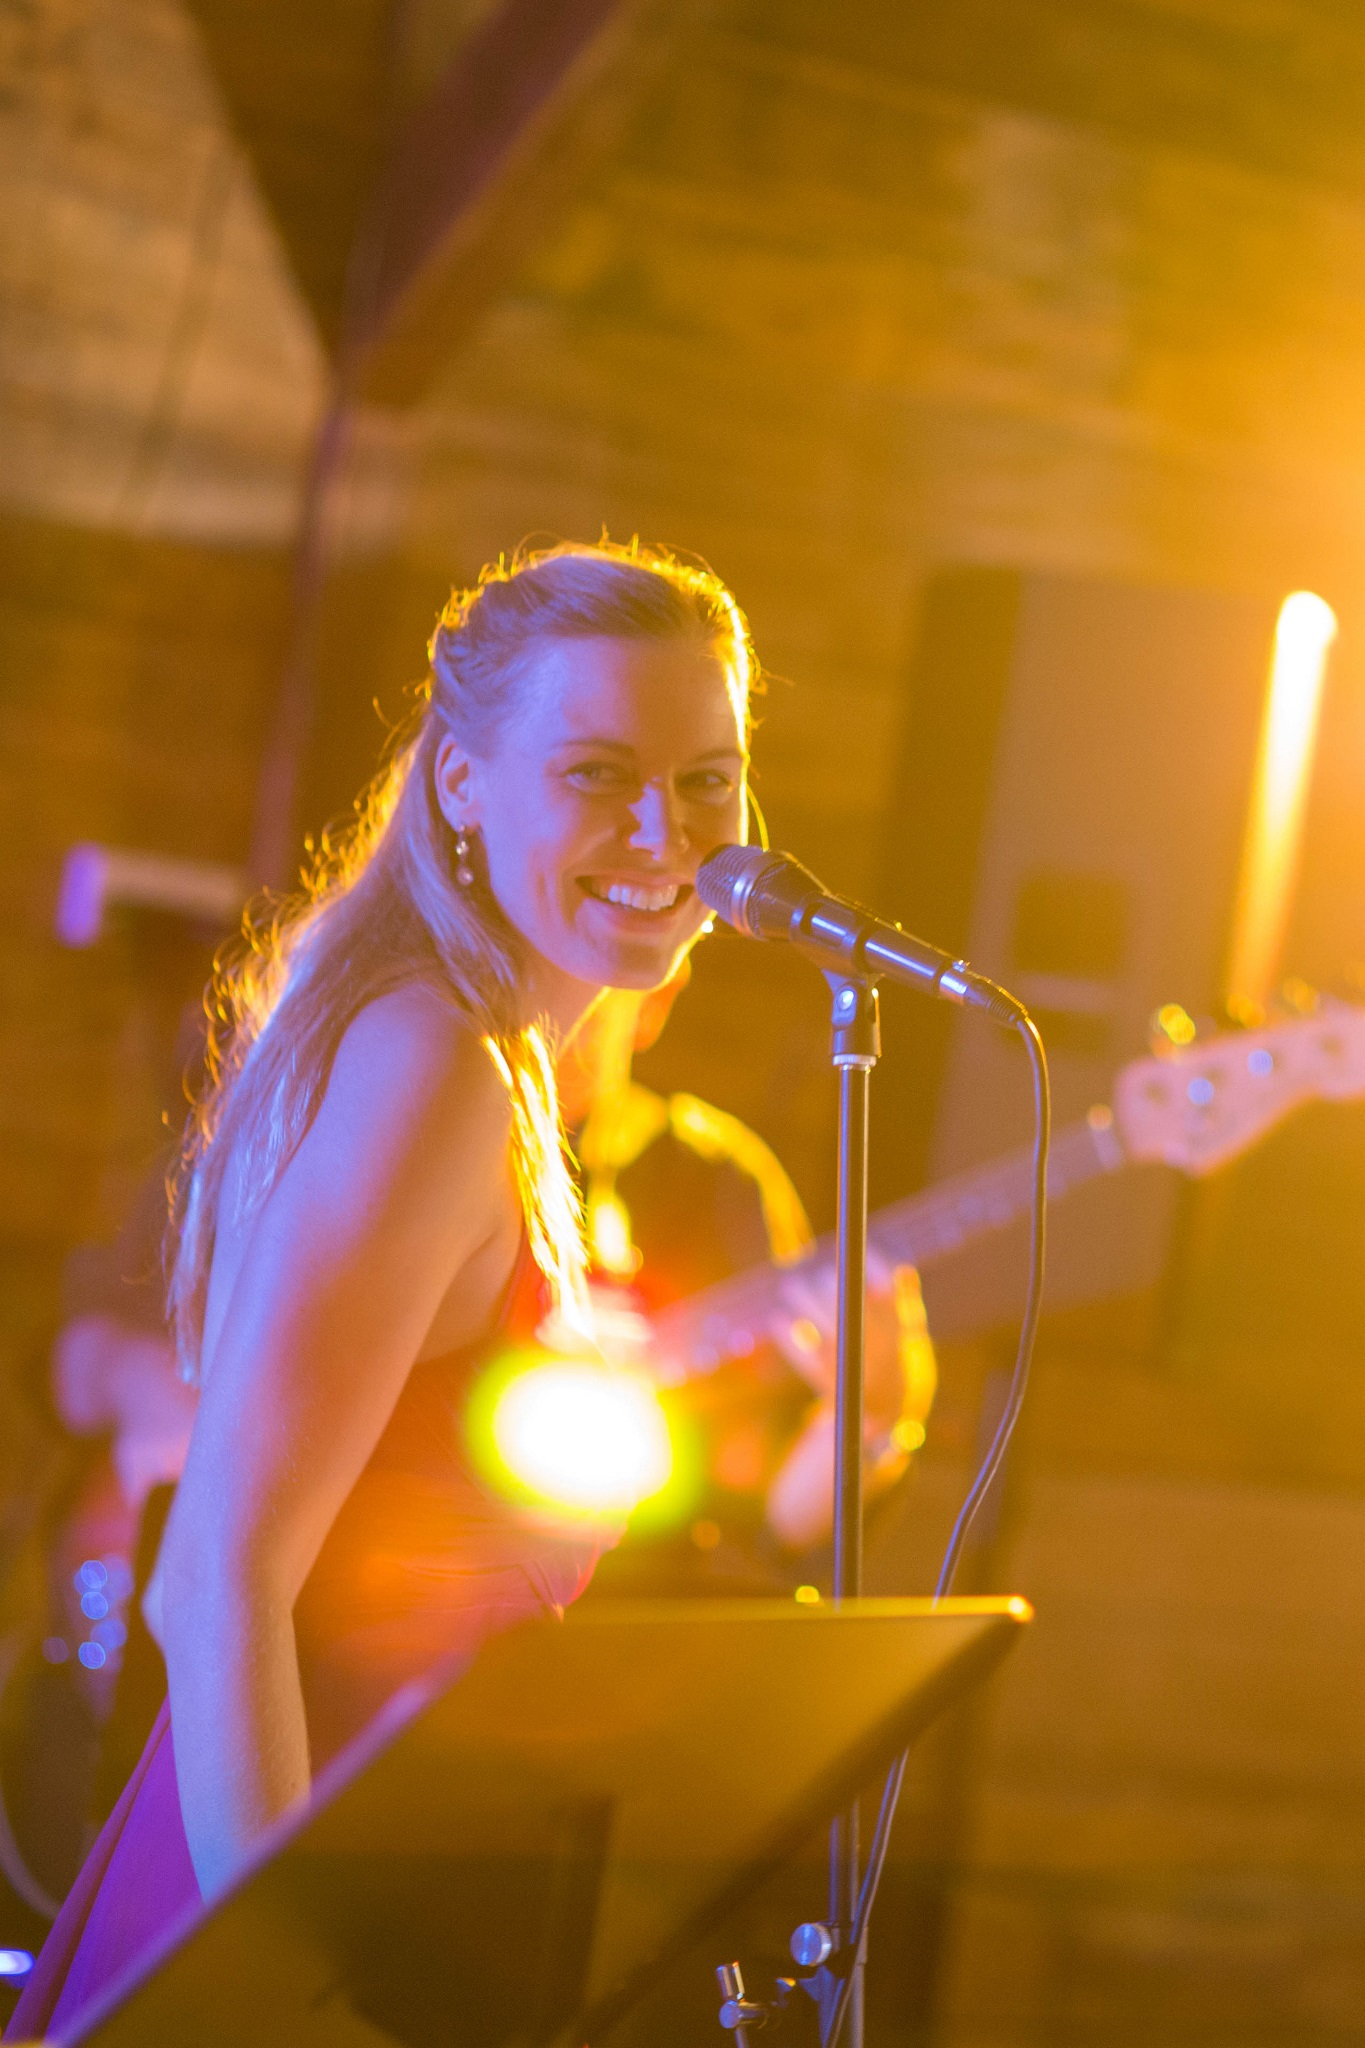 Andrea Allumay performing at a private event with band